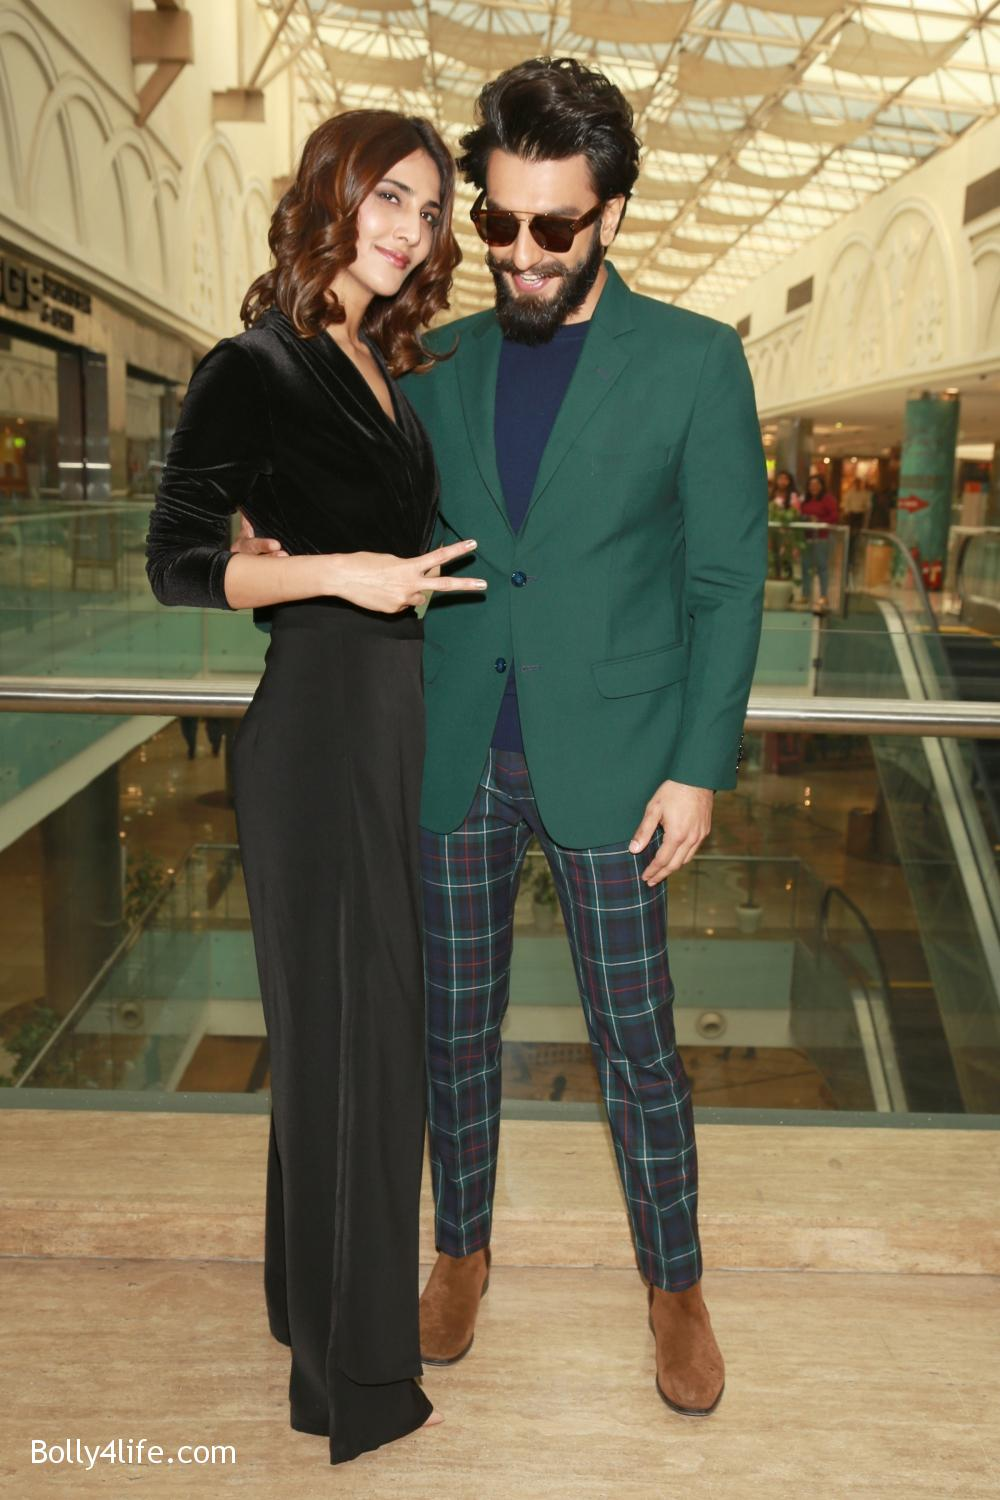 Ranveer-Singh-and-Vaani-Kapoor-during-the-promotion-of-their-upcoming-film-Befikre-5.jpg